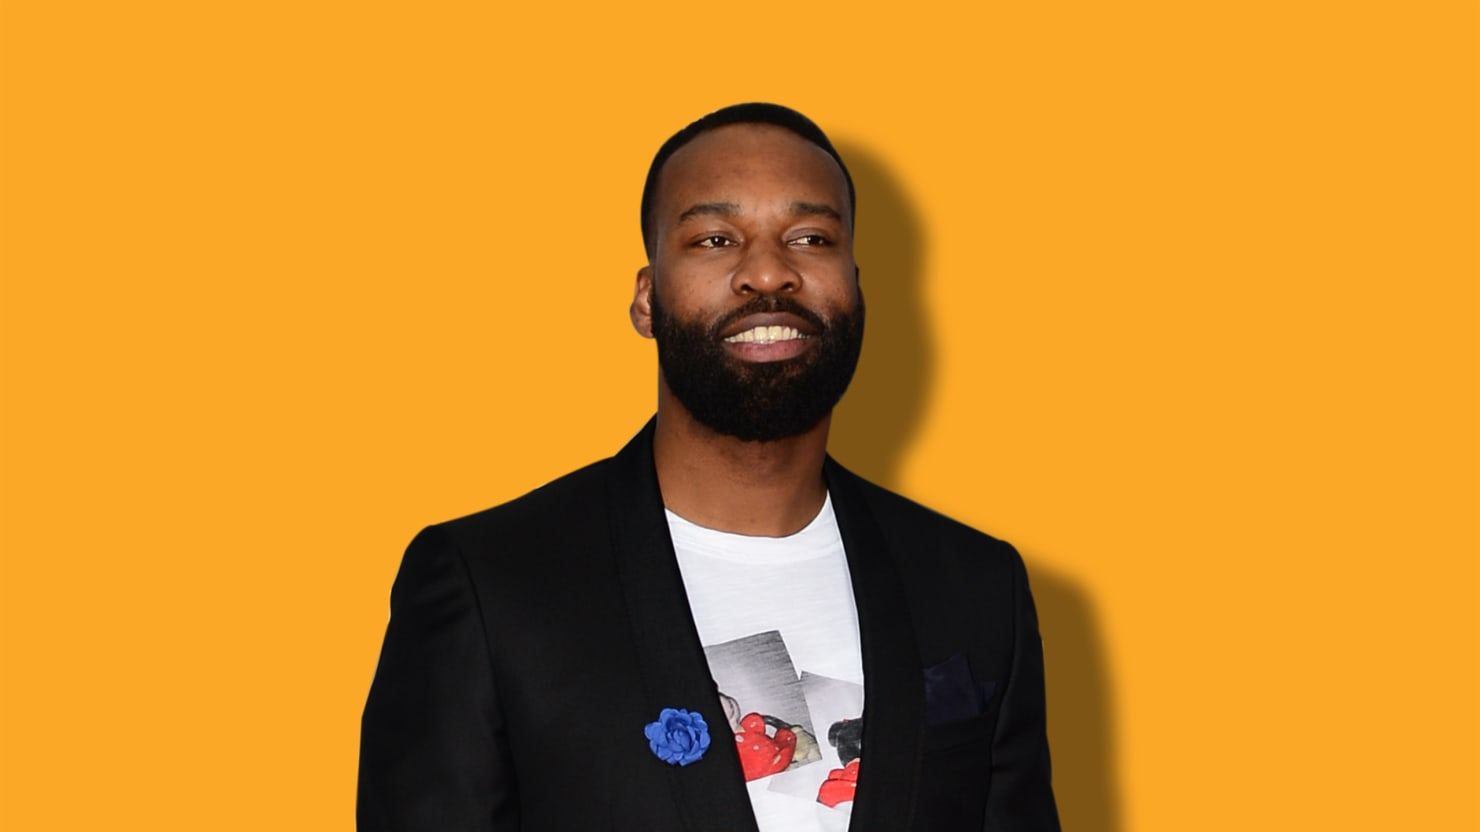 Baron Davis I Want Steph Curry For Avengers Style Space Jam 2